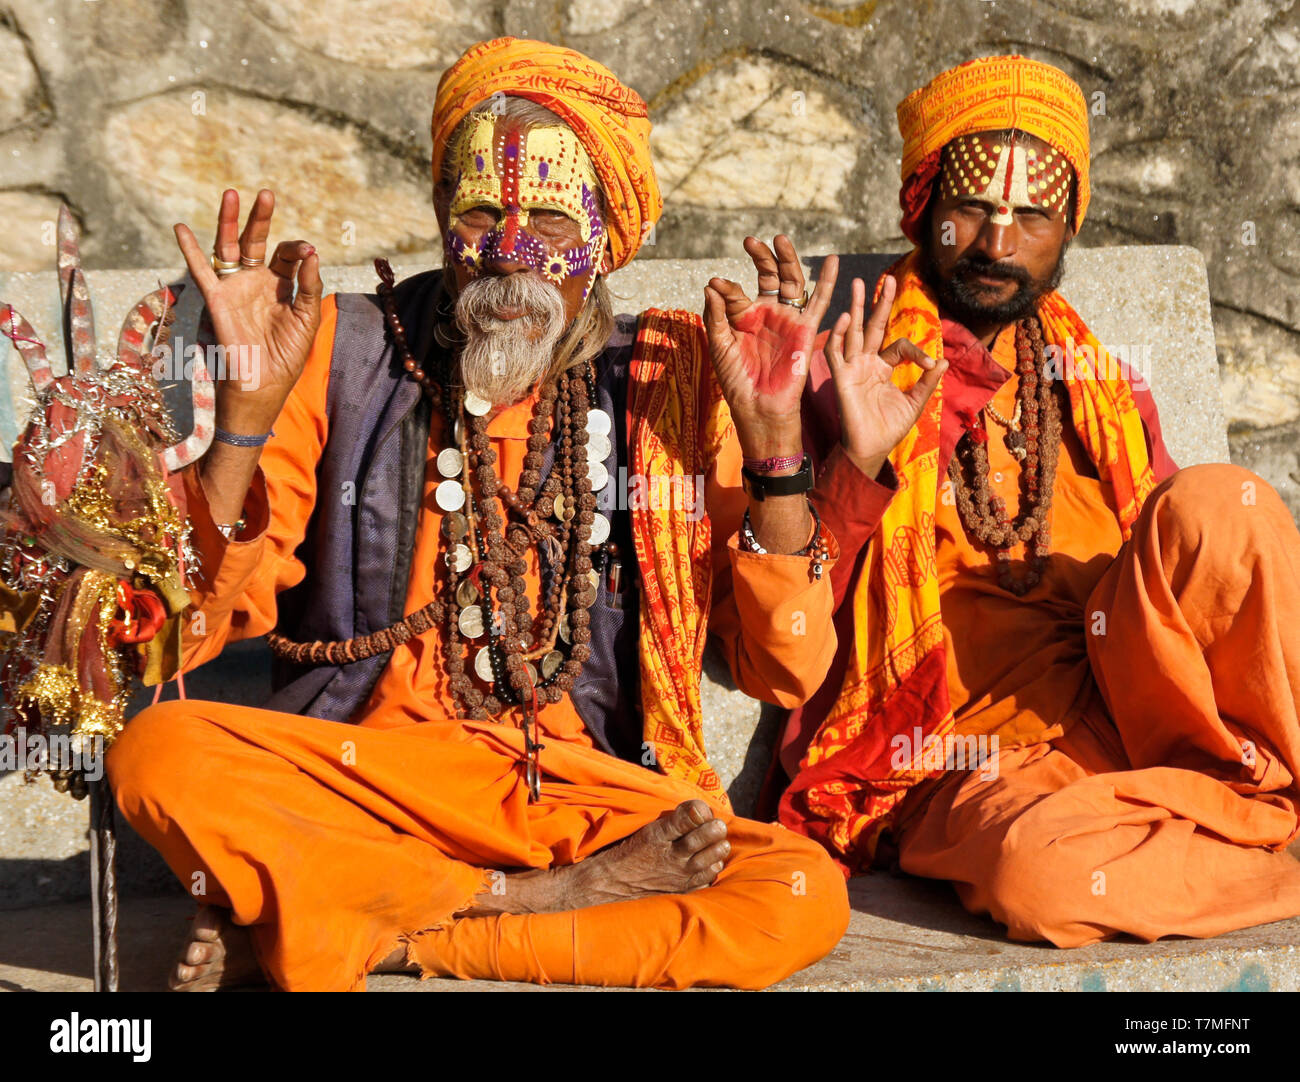 Two sadhus (holy men) with painted faces, clad in orange robes, sit on a bench at Pashupatinath Hindu temple, Kathmandu Valley, Nepal - Stock Image